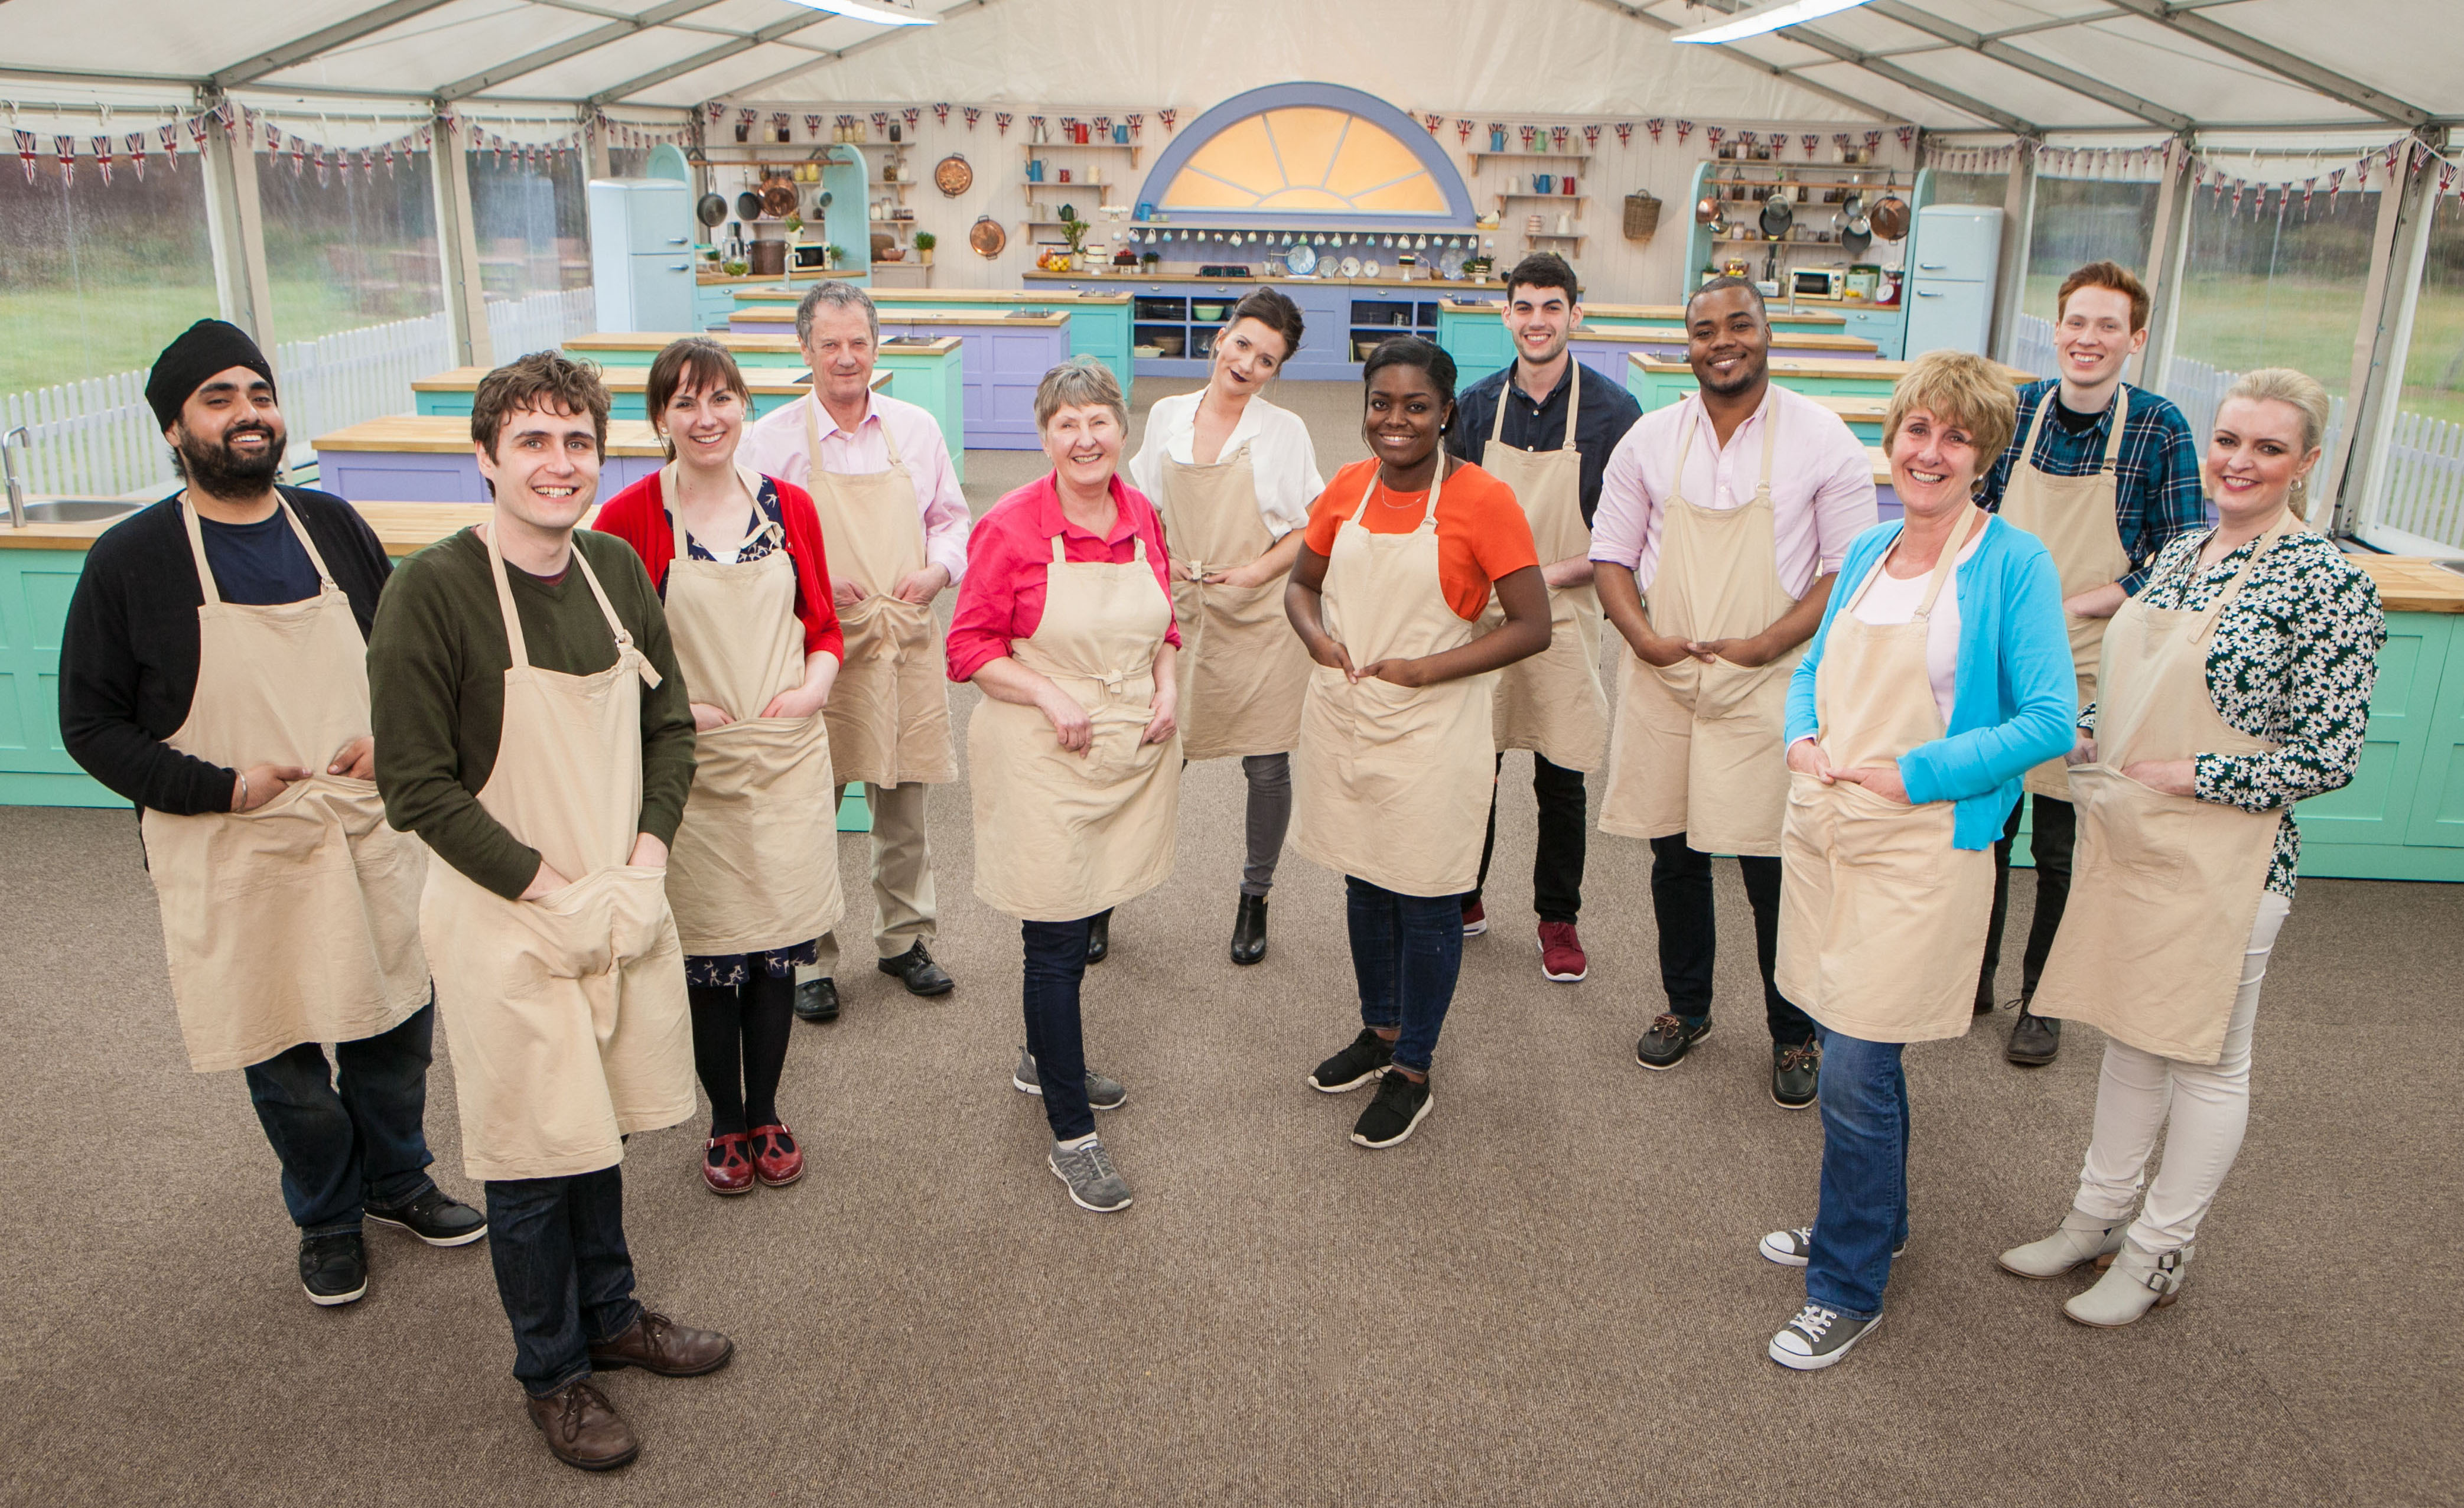 For use in UK, Ireland or Benelux countries only Undated BBC handout photo of (left-right) Rav, Tom, Kate, Lee, Val, Candice, Benjamina , Michael, Selasi, Jane, Andrew & Louise the contestants for this year's BBC1's cookery contest, The Great British Bake Off. PRESS ASSOCIATION Photo. Issue date: Tuesday August 16, 2016. See PA story SHOWBIZ GBBO. Photo credit should read: Mark Bourdillon/BBC/PA Wire NOTE TO EDITORS: Not for use more than 21 days after issue. You may use this picture without charge only for the purpose of publicising or reporting on current BBC programming, personnel or other BBC output or activity within 21 days of issue. Any use after that time MUST be cleared through BBC Picture Publicity. Please credit the image to the BBC and any named photographer or independent programme maker, as described in the caption.